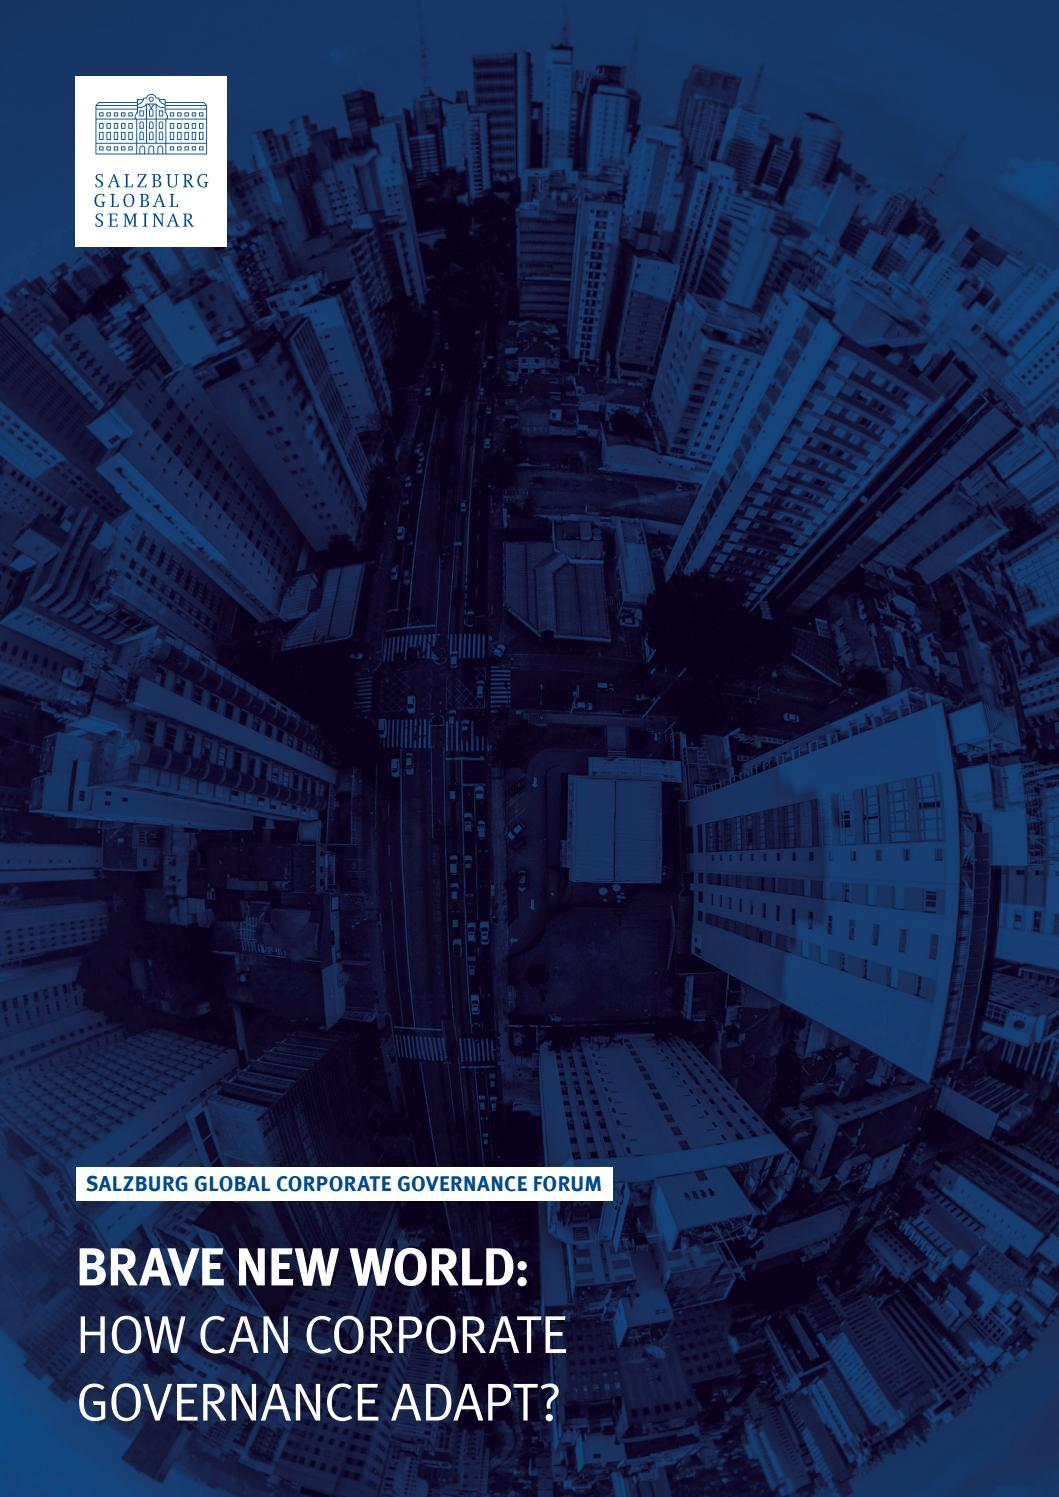 Brave New World: How Can Corporate Governance Adapt? by